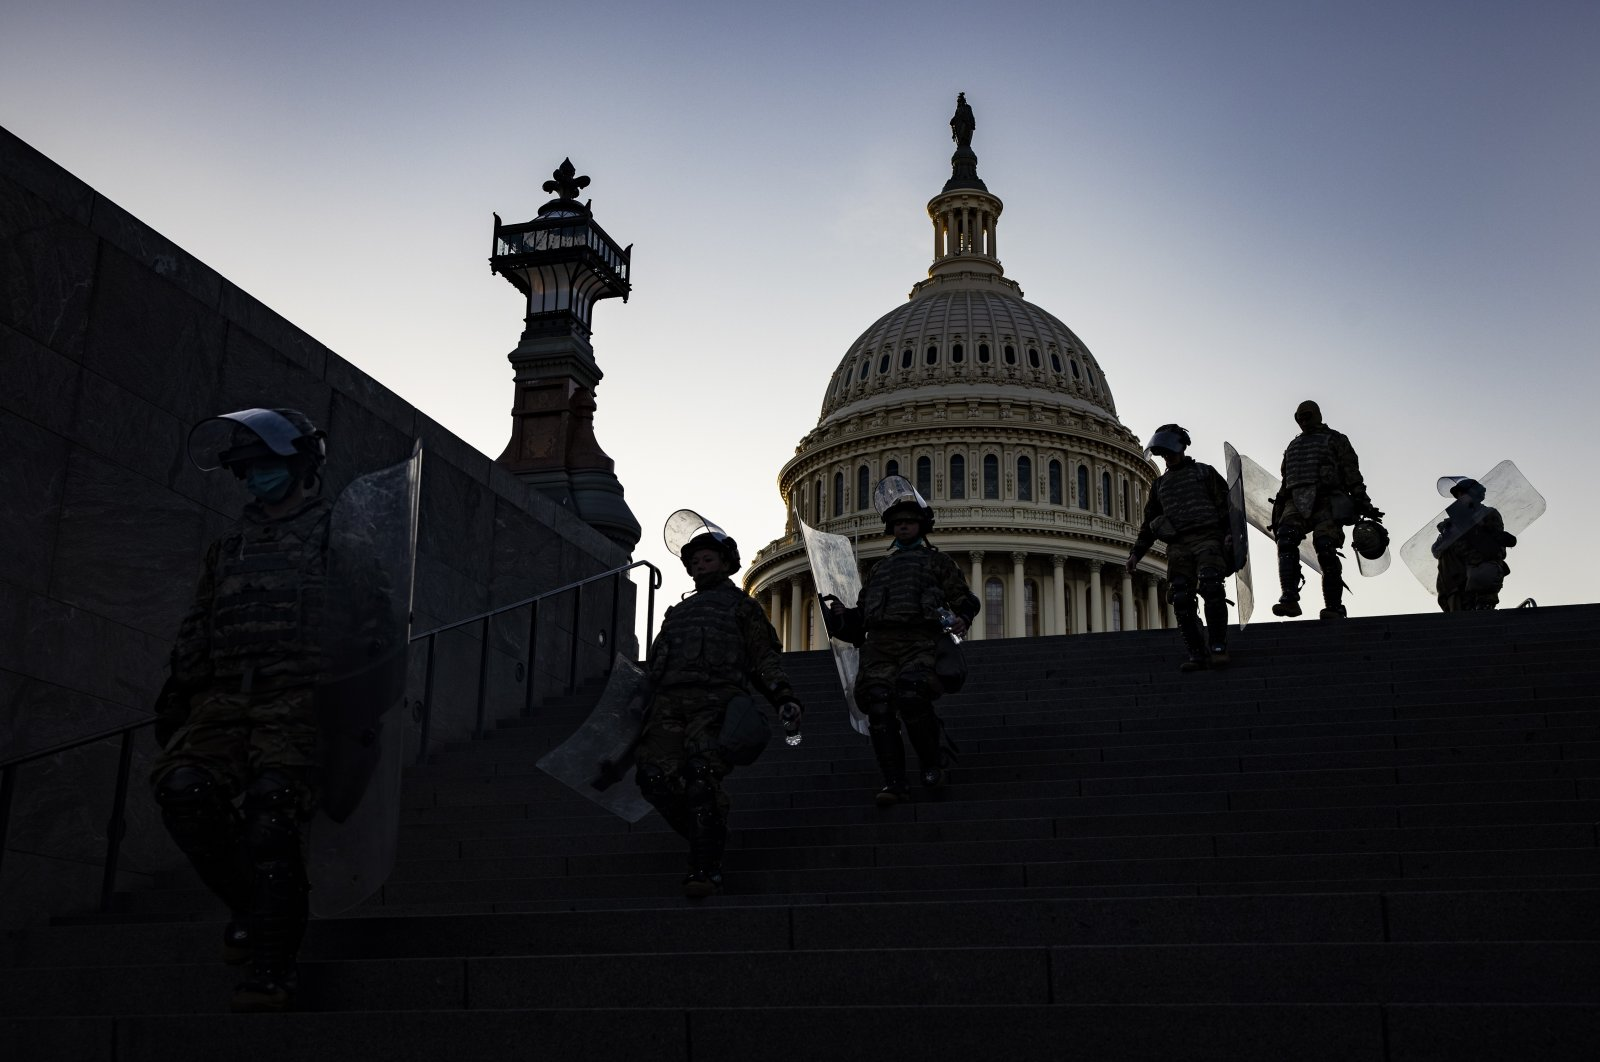 National Guard soldiers with riot shields head to the Capitol Visitors Center after being deployed to secure the grounds around the US Capitol building in Washington, DC, USA, 13 January 2021. (EPA Photo)